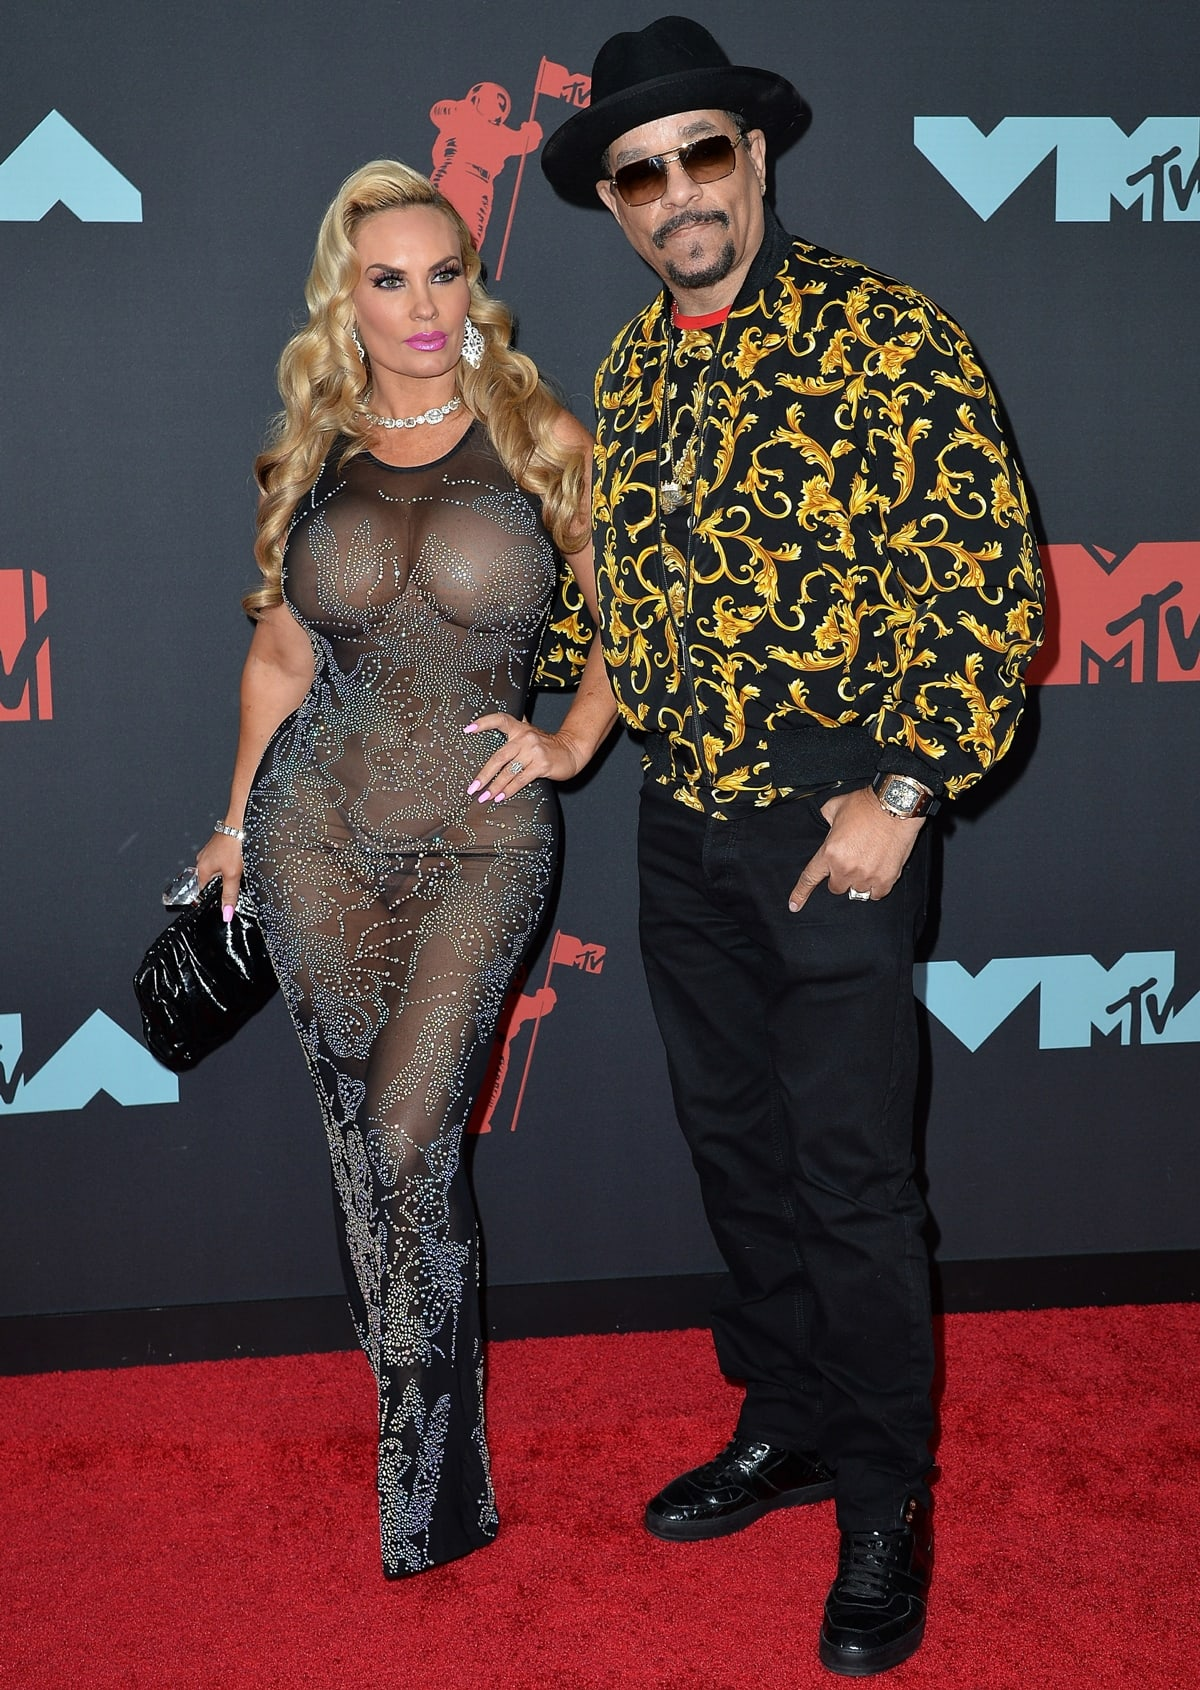 Coco Austin and her husband Ice-T attend the 2019 MTV Video Music Awards